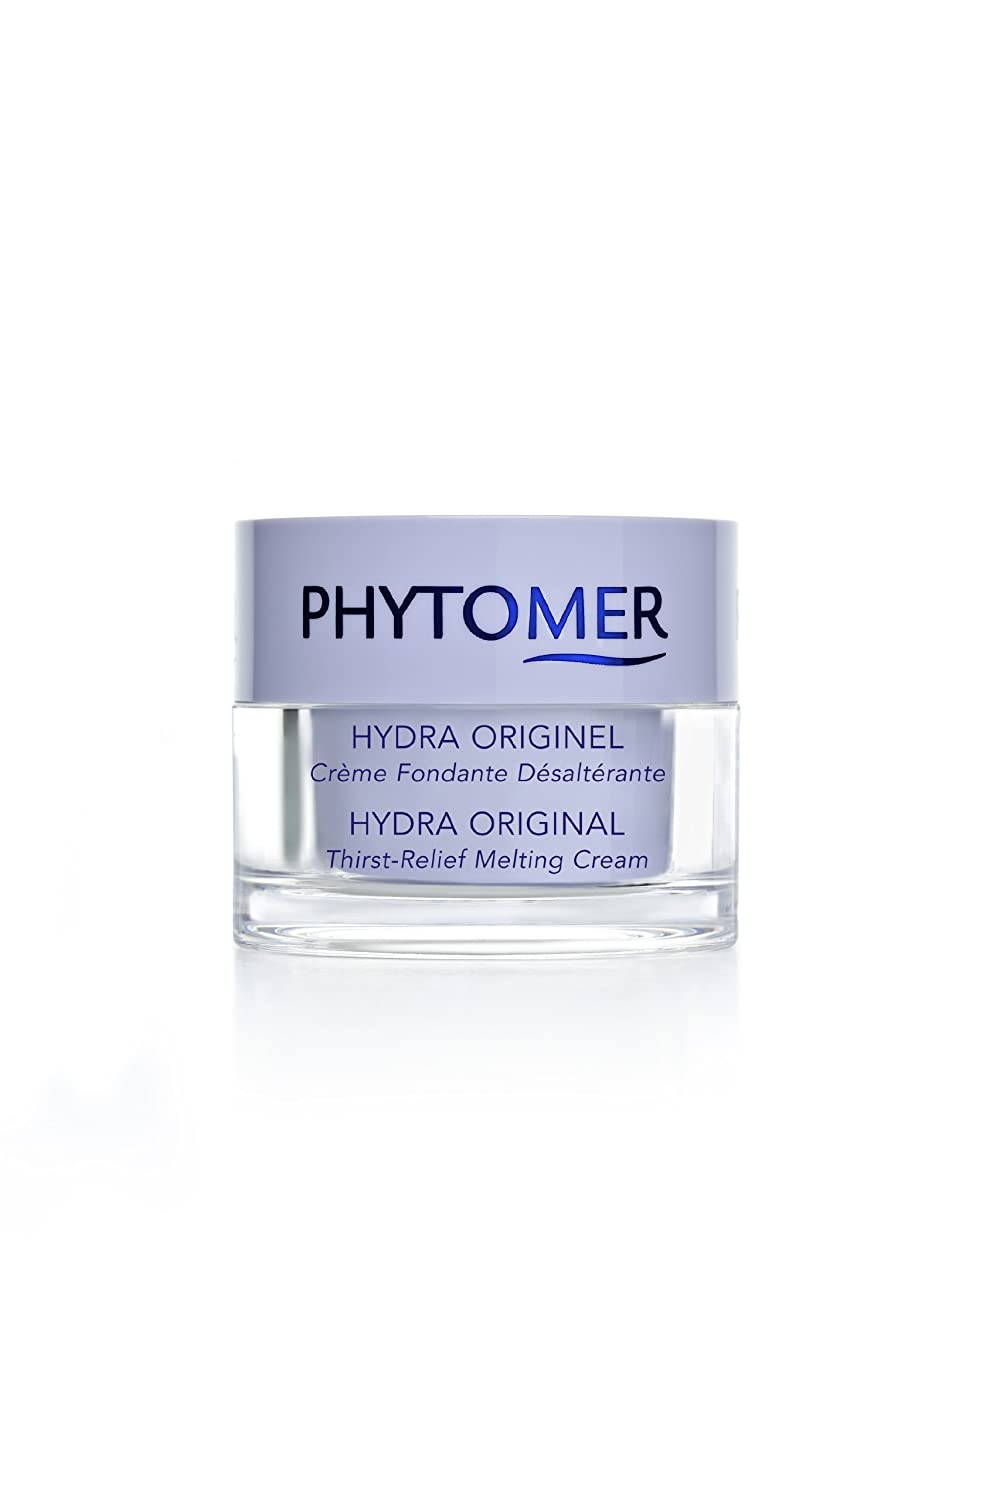 Phytomer Hydra Original Thirst-Relief Melting Cream 50 ml by Phytomer 1PF-SVV312